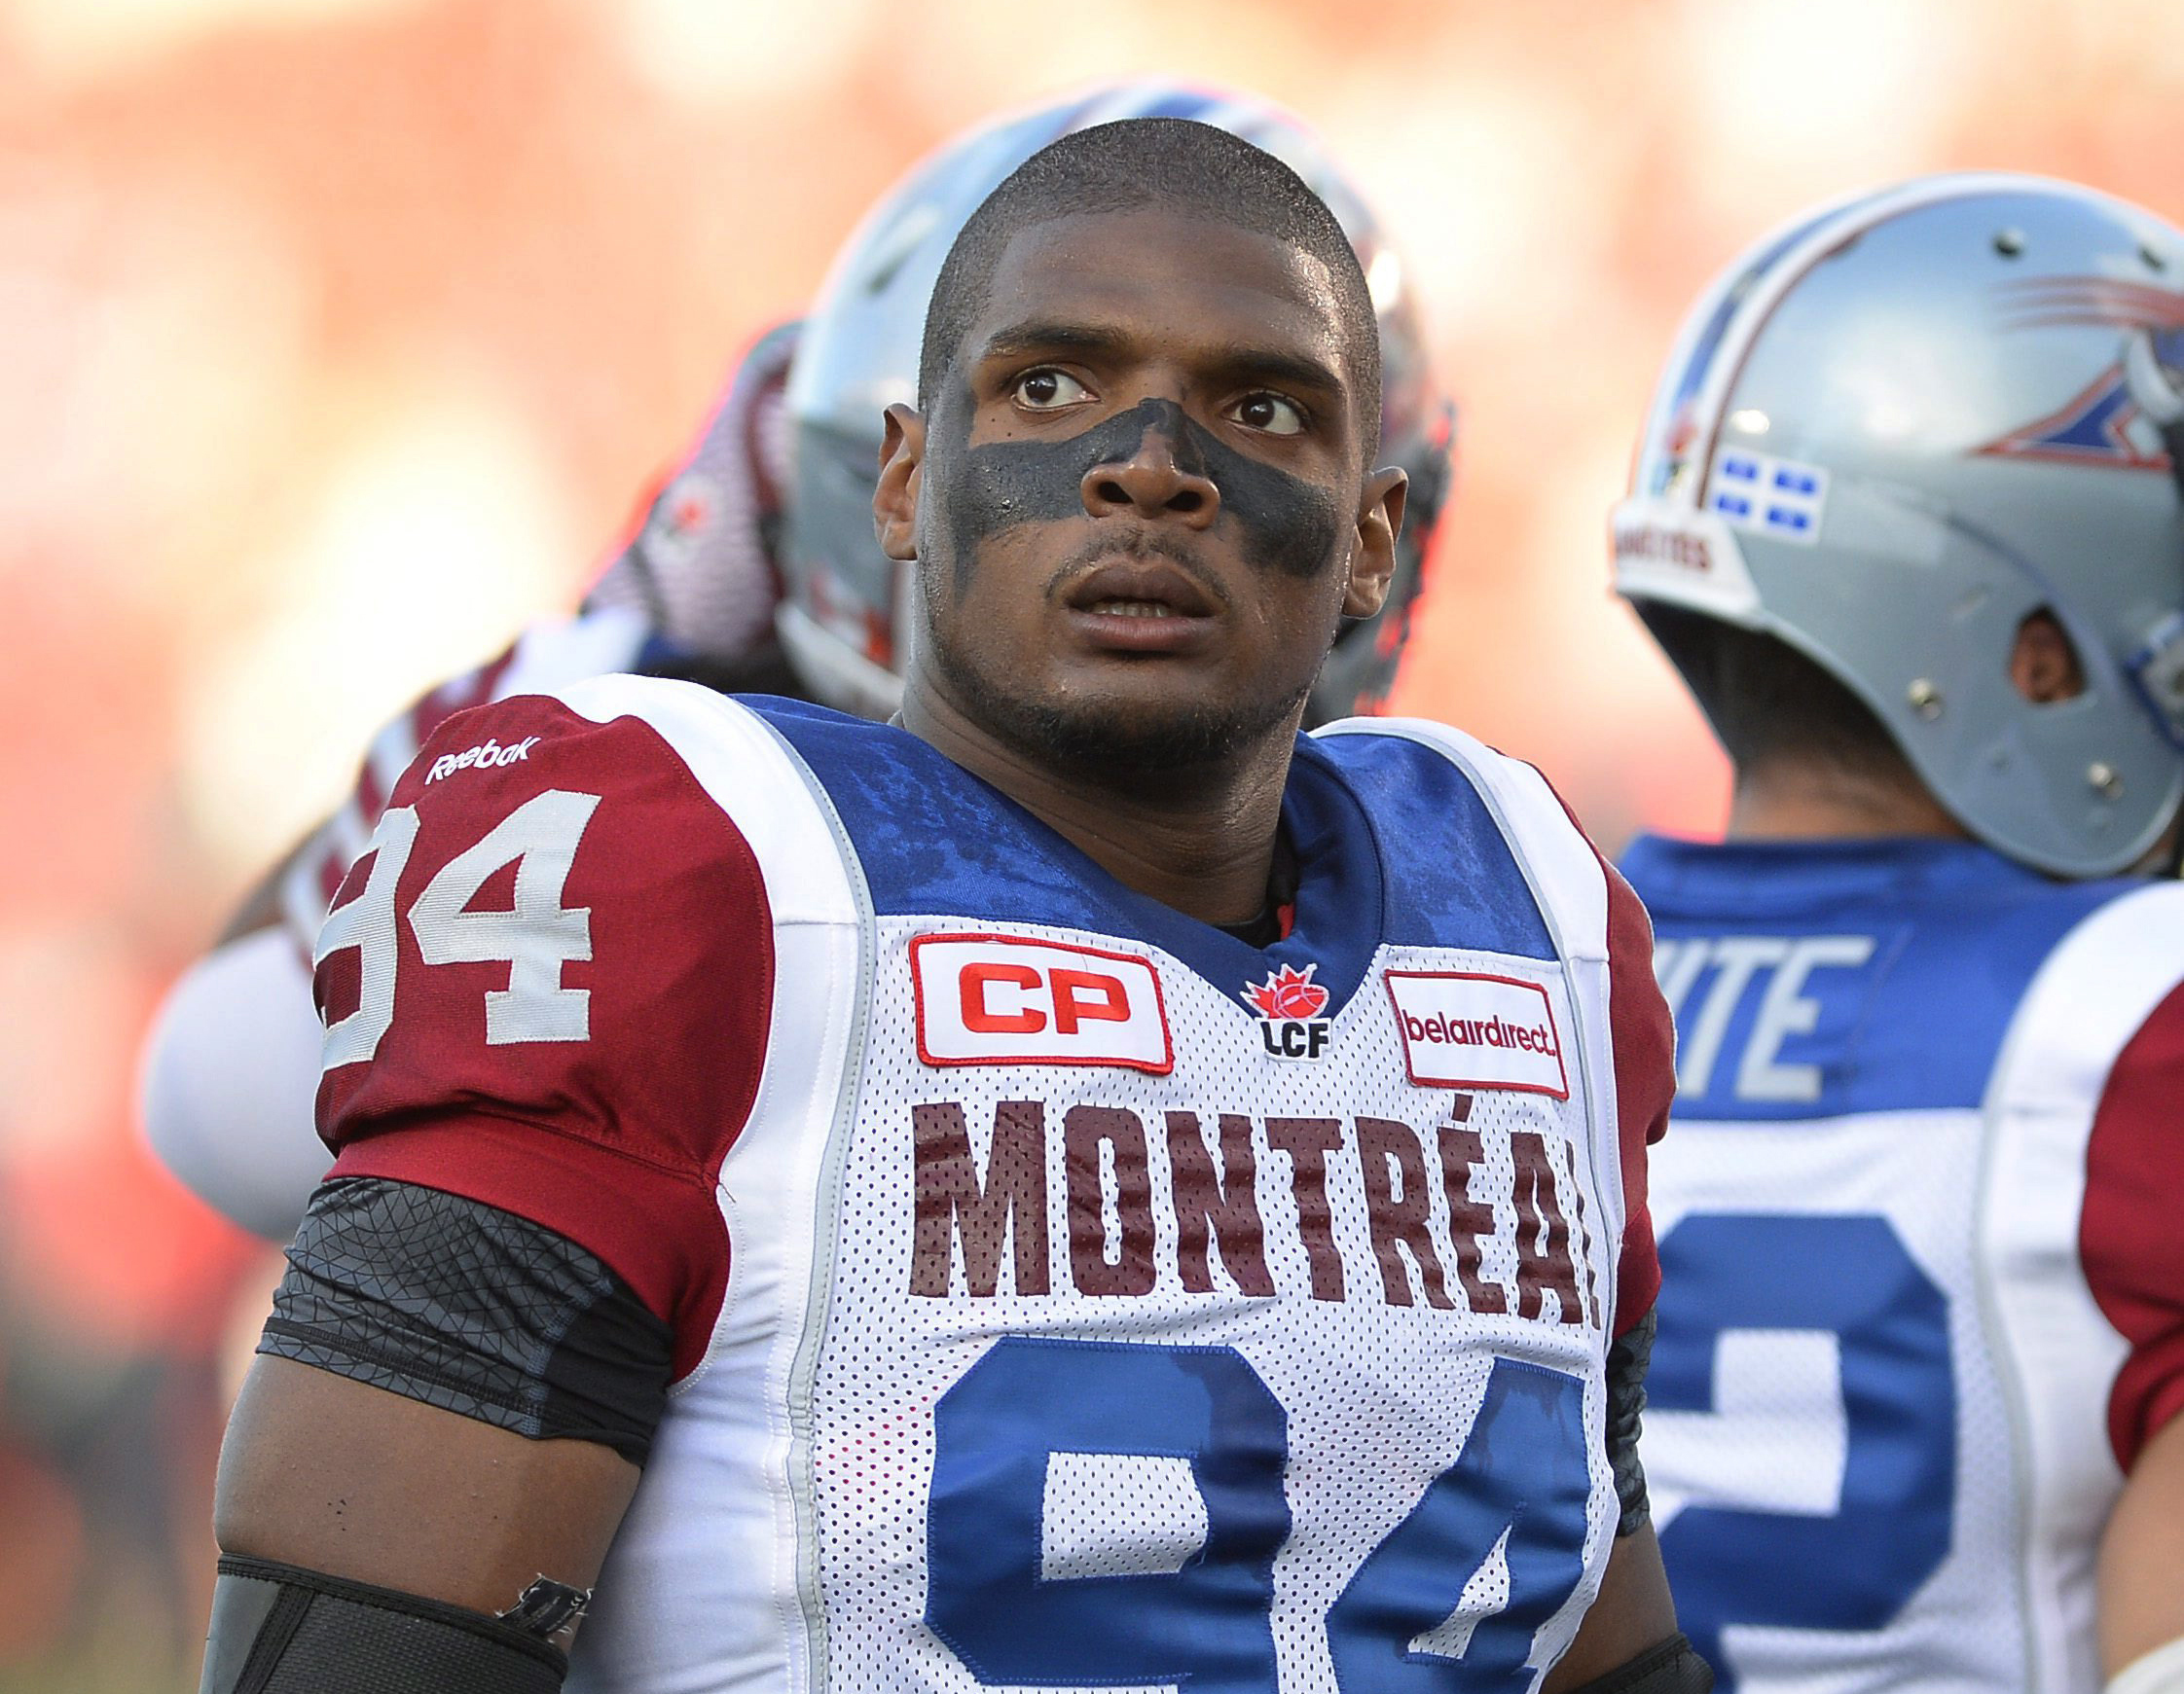 FILE - In this Aug. 7, 2014, file photo, Montreal Alouettes' Michael Sam and teammates warm up for a Canadian Football League game against the Ottawa Redblacks in Ottawa, Ontario. The first openly gay player to be drafted by an NFL team is heading to Mass